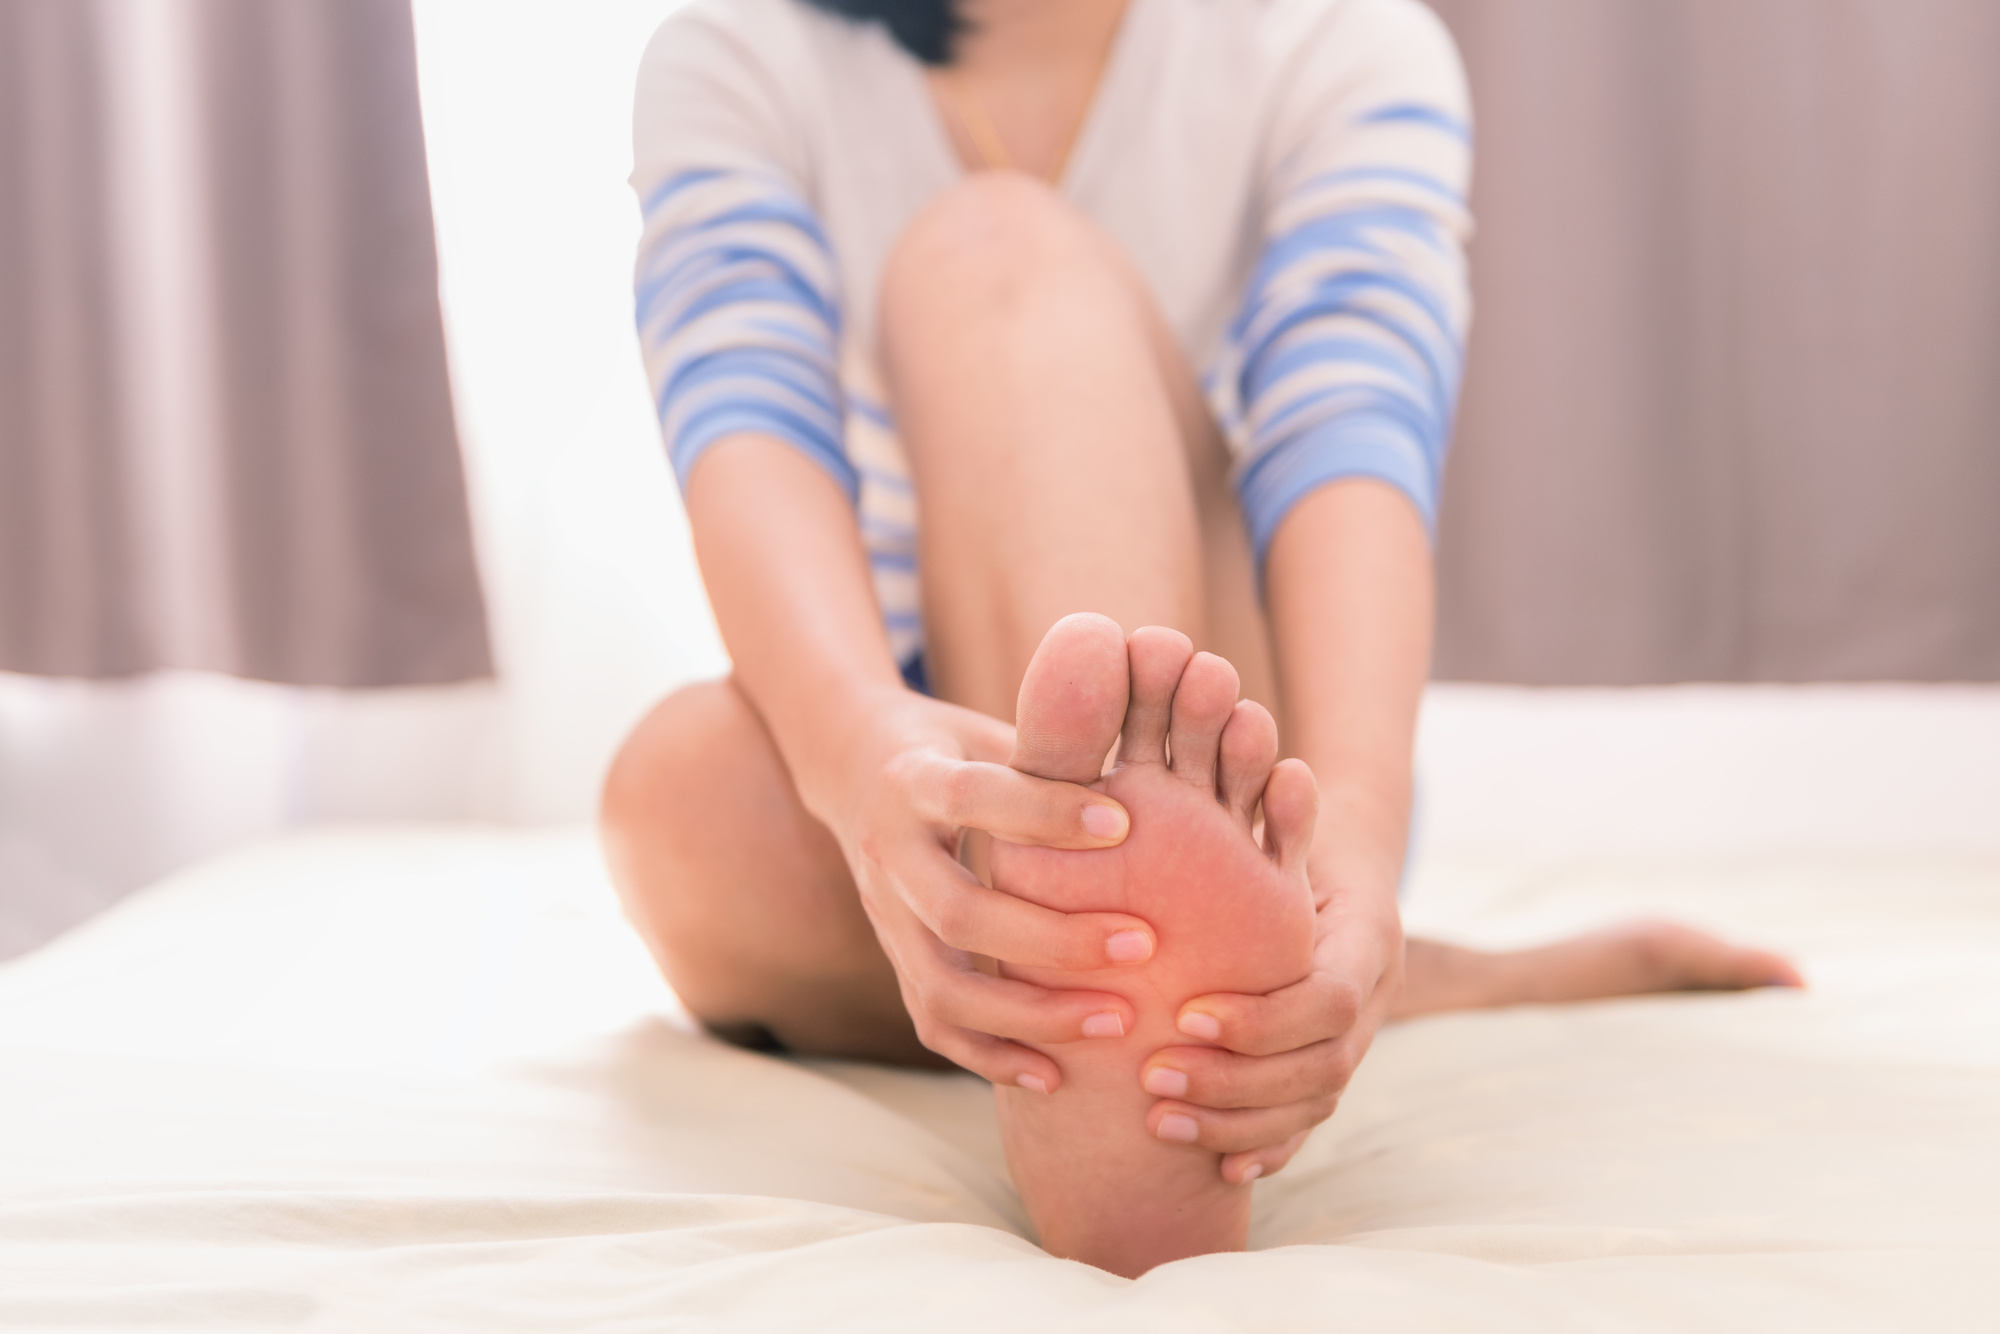 7 Types of Foot Pain and Why You Should Pay Attention to Them